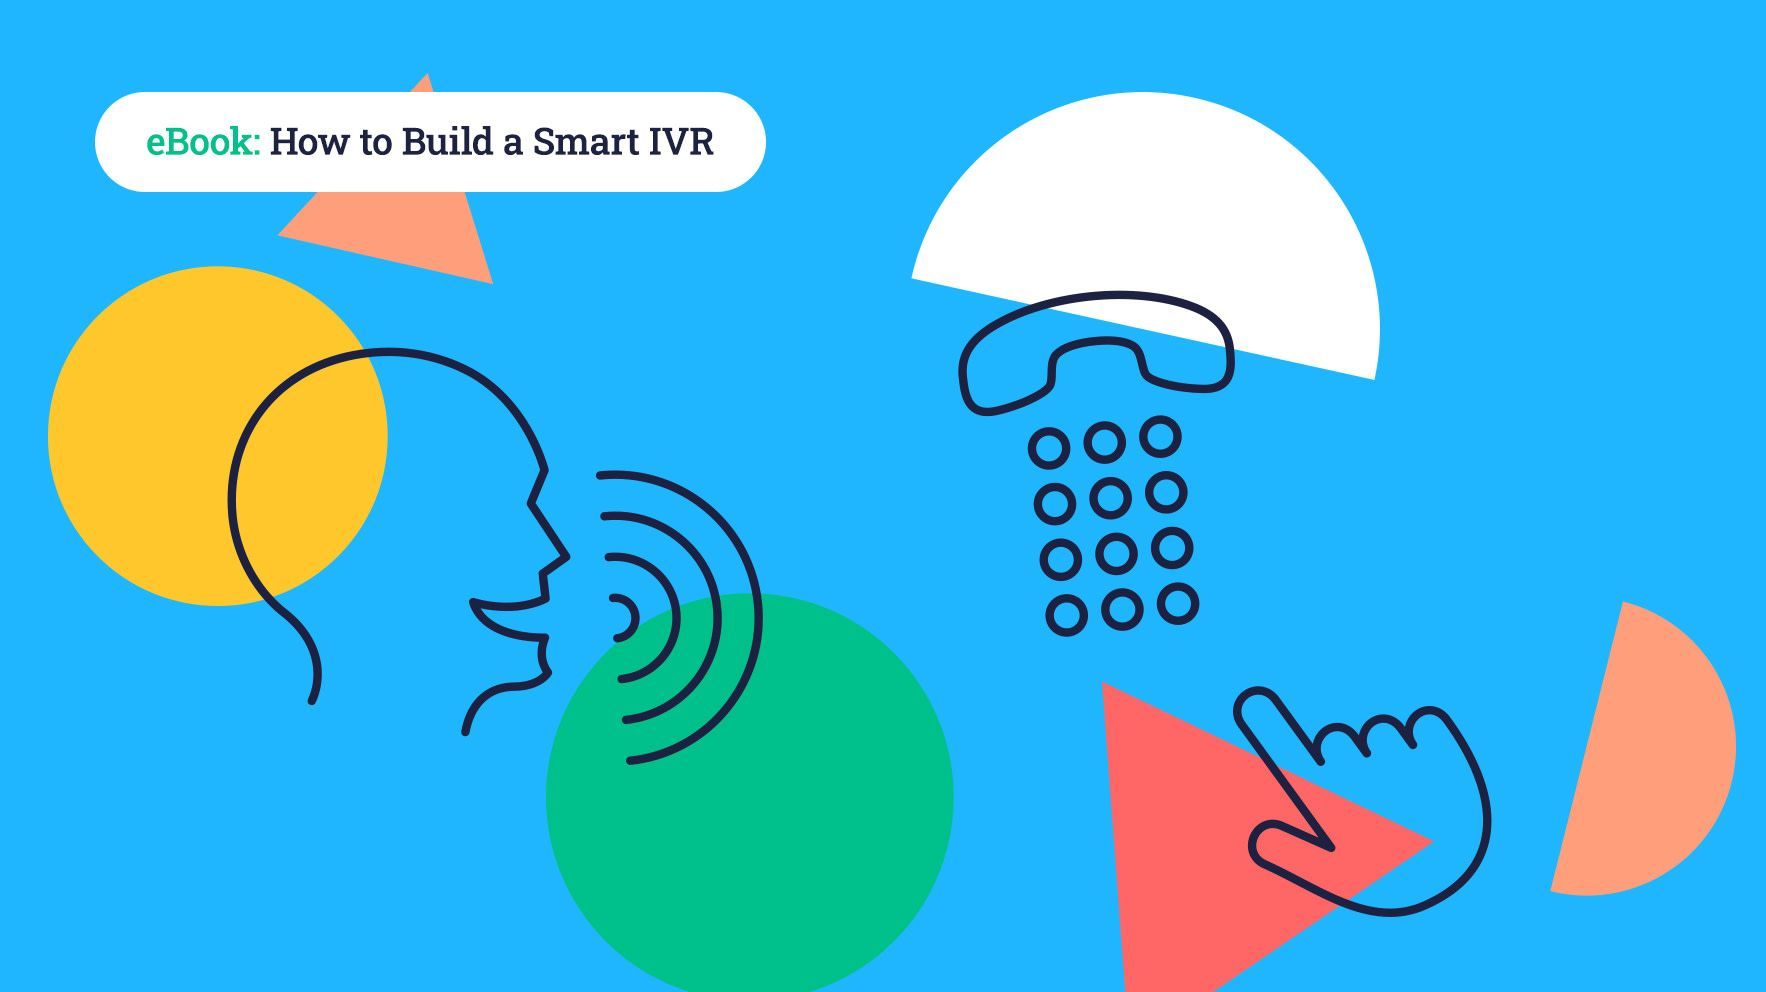 How to build a smart IVR